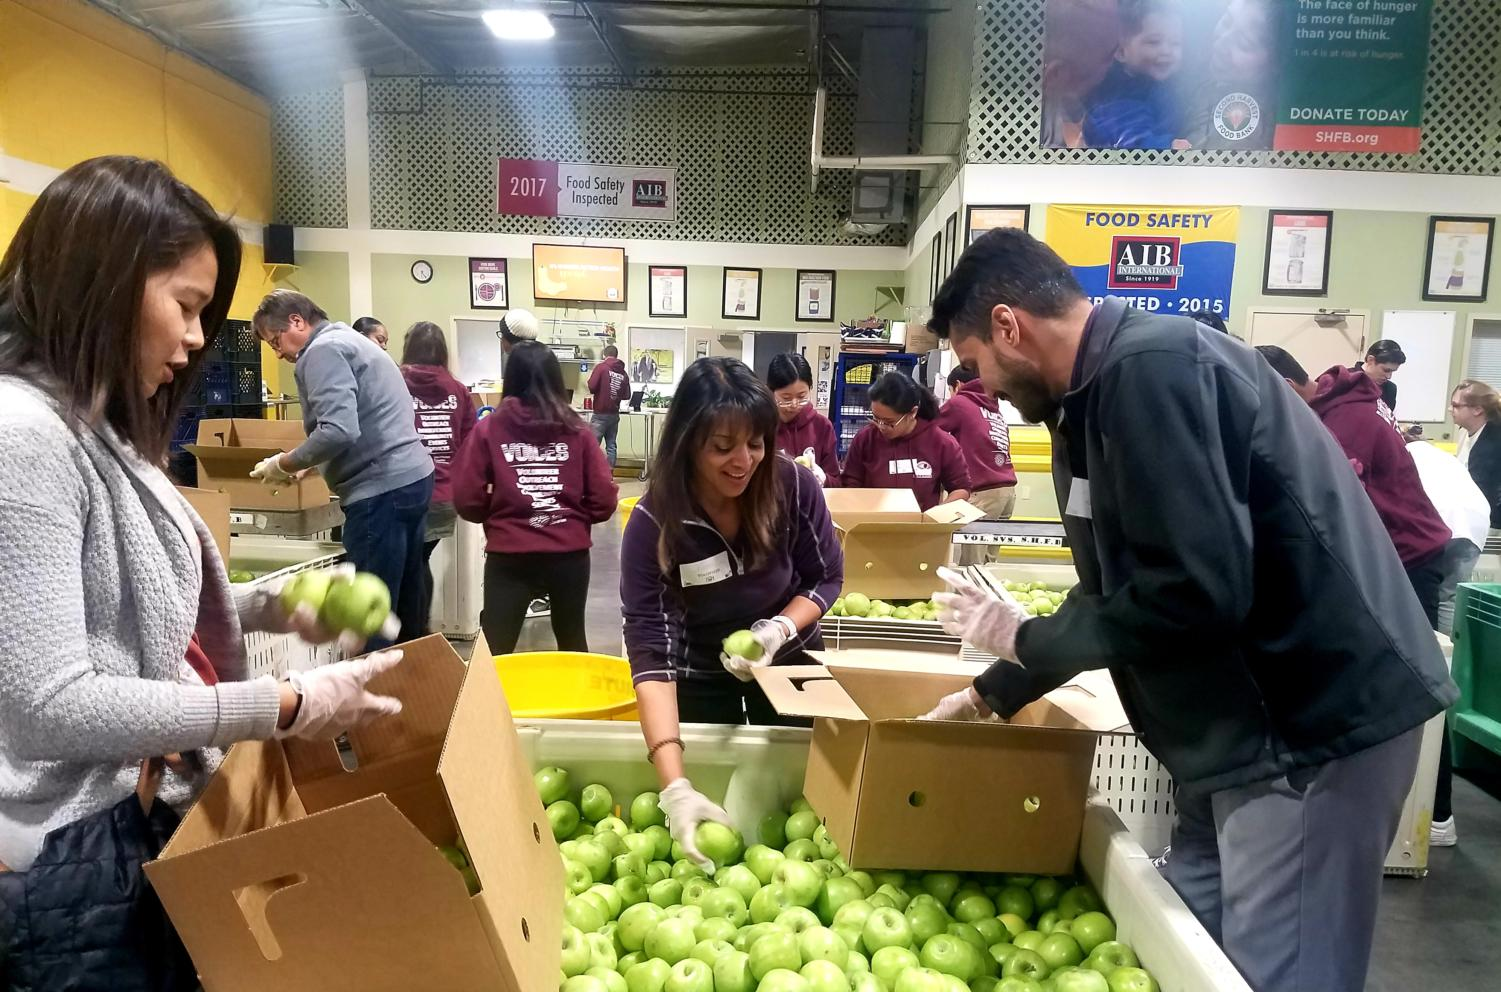 Volunteers at the latest event sorted apples for families for the holiday season.